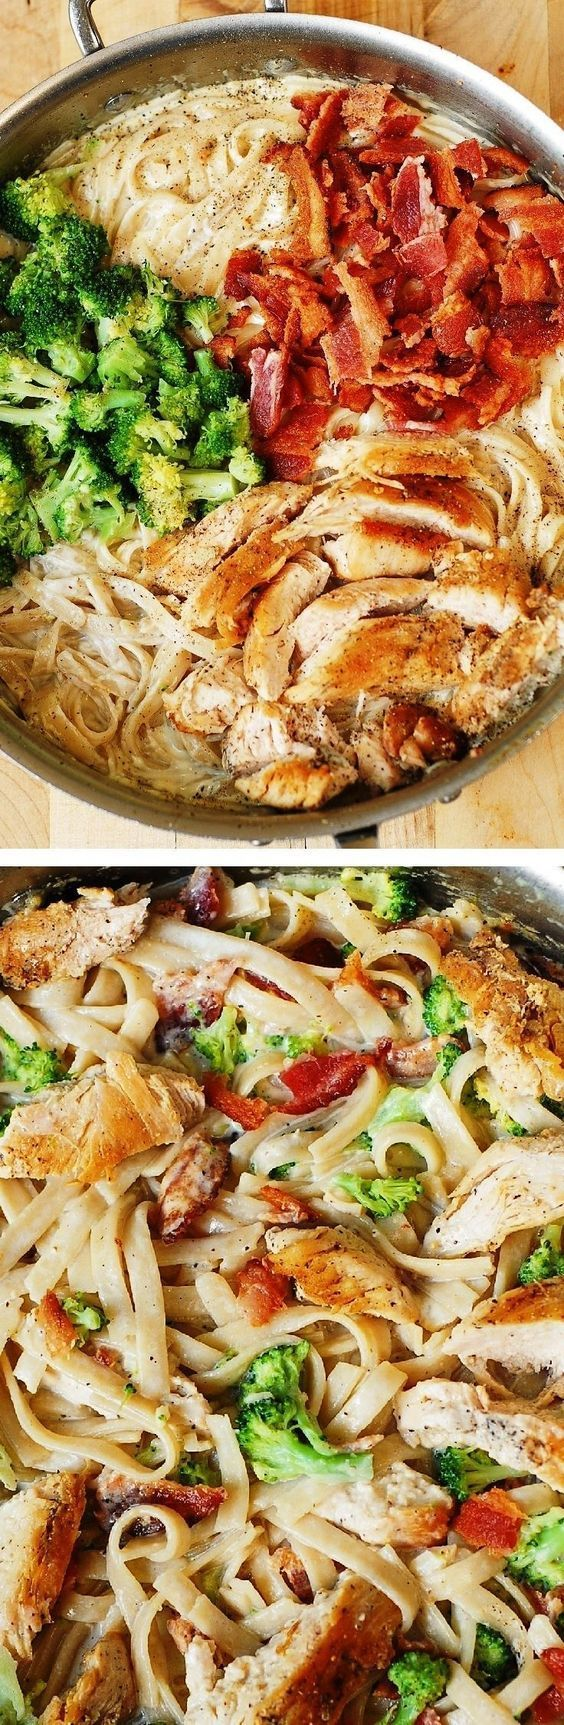 awesome If you like pasta, chicken and bacon then this dish is for you! #Fallrecipes...by http://dezdemooncooking.gdn